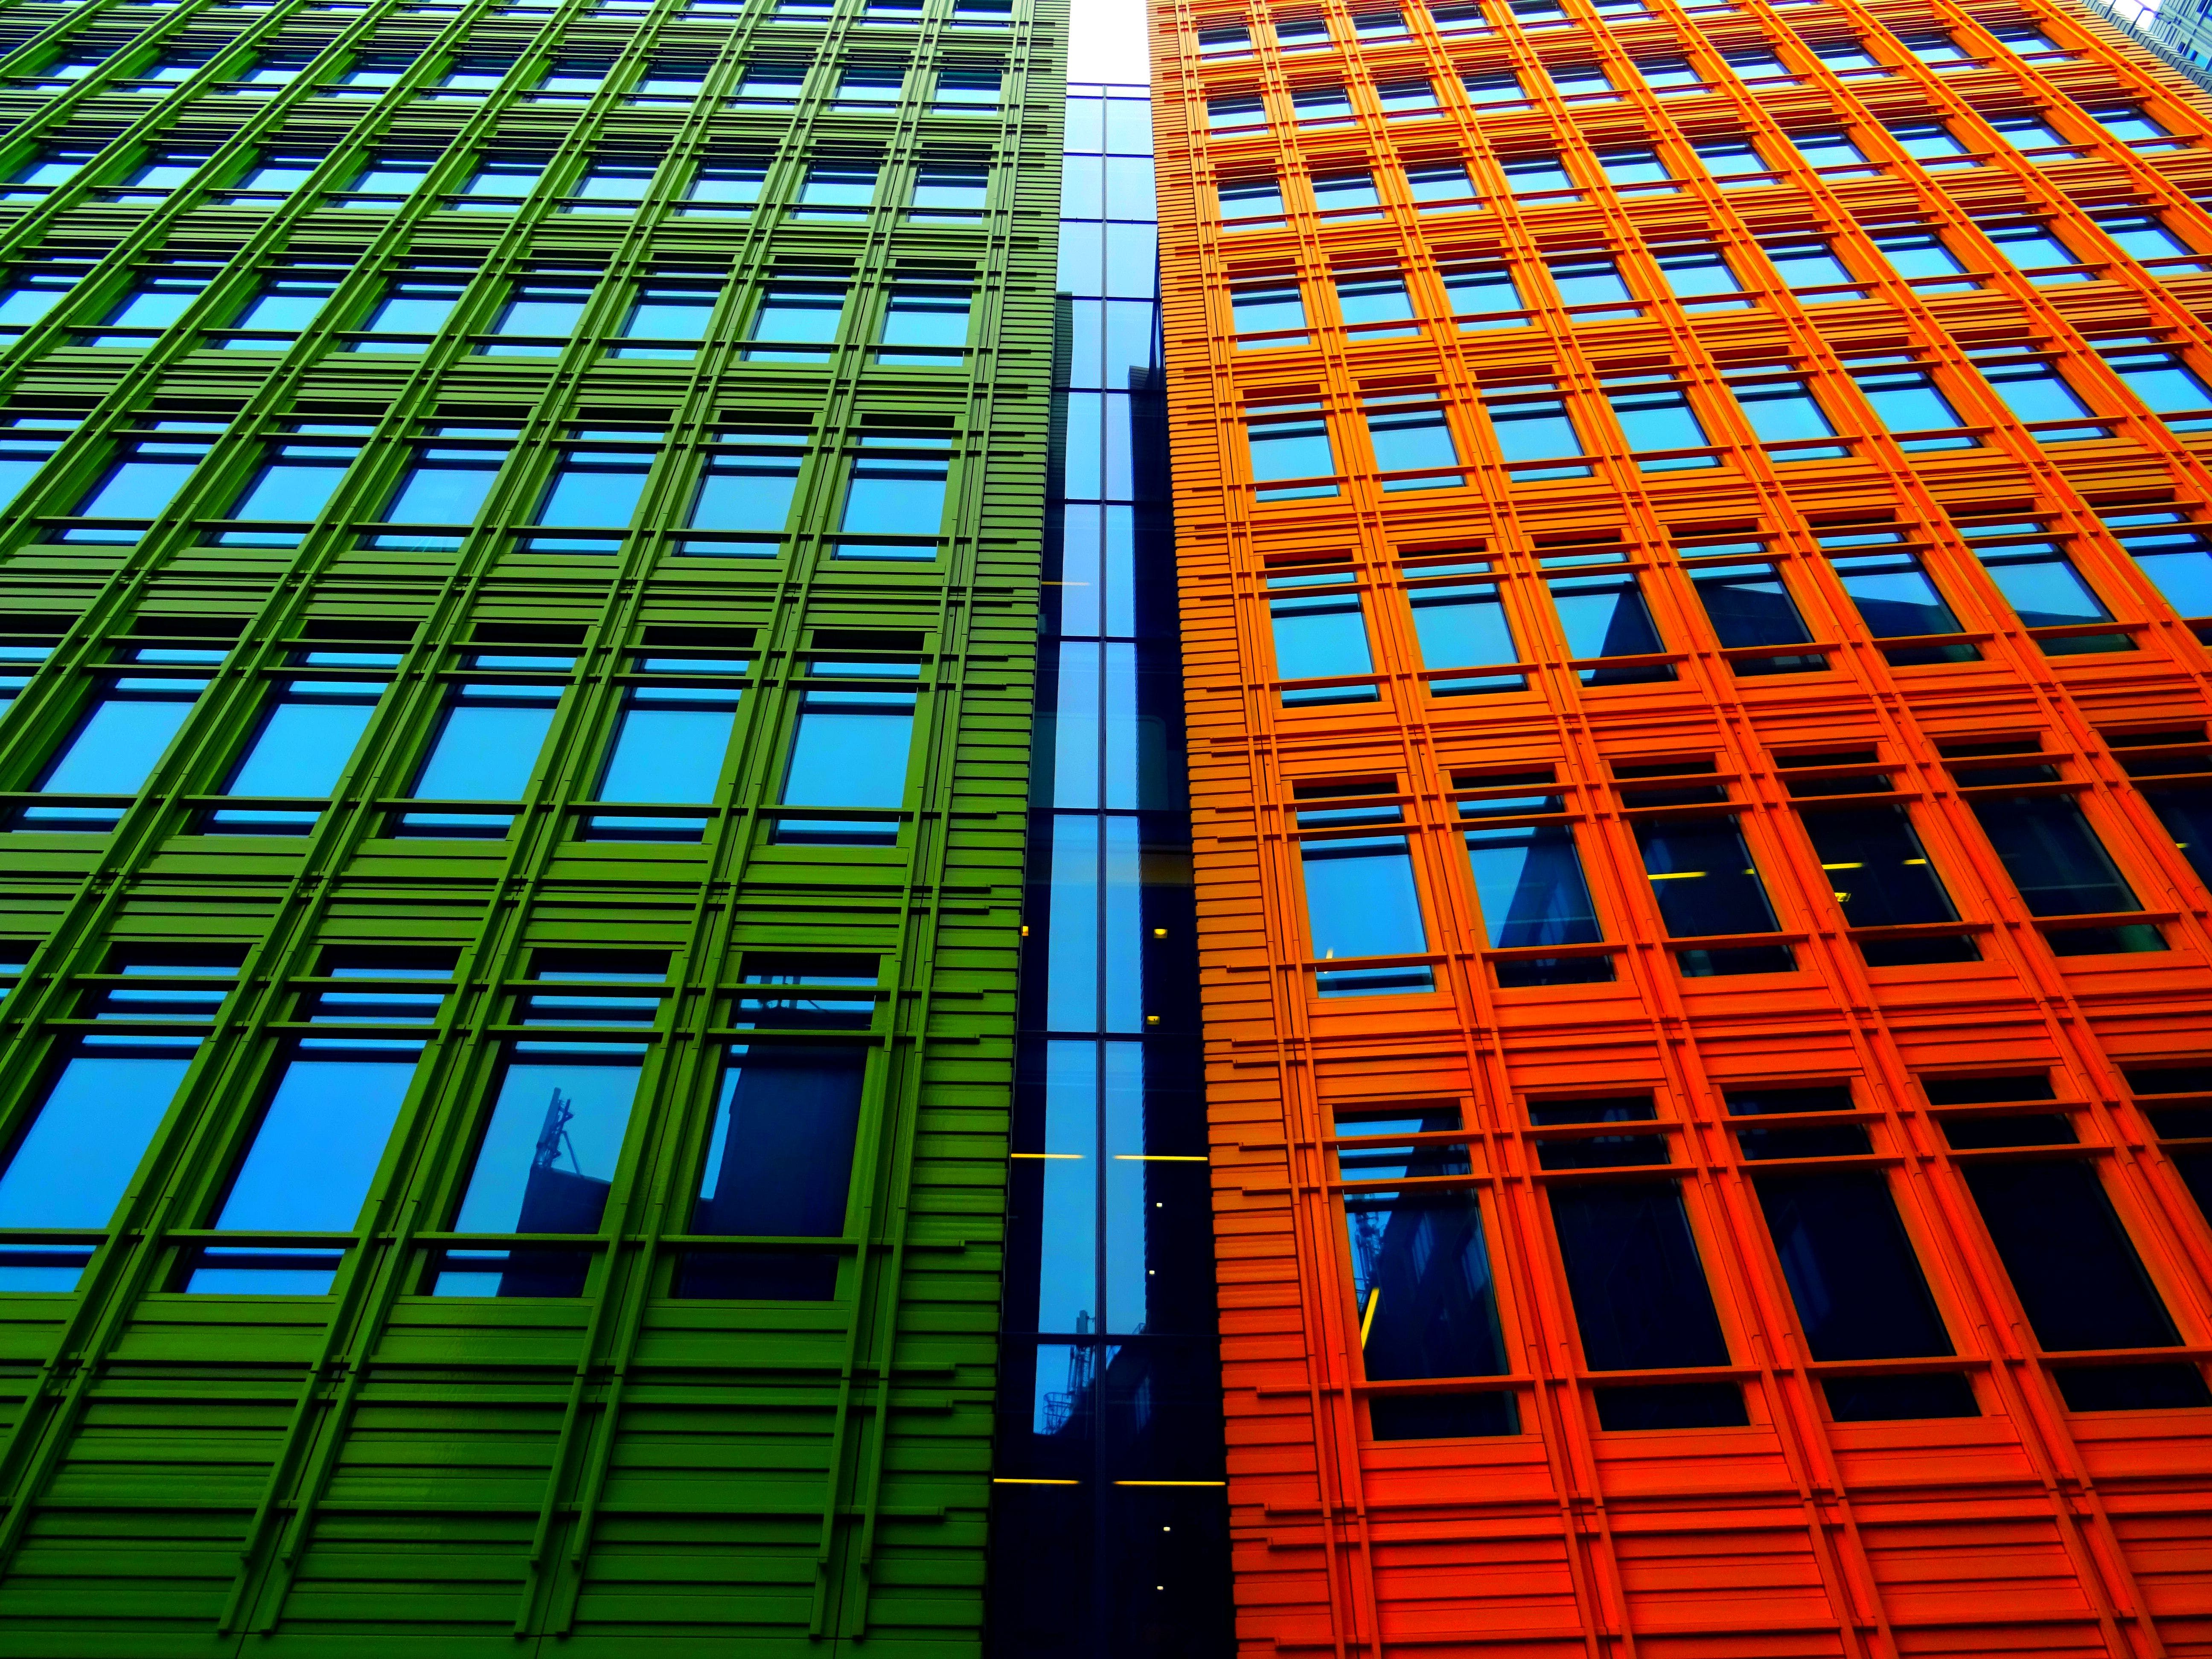 Orange and Green High-rise Buildings